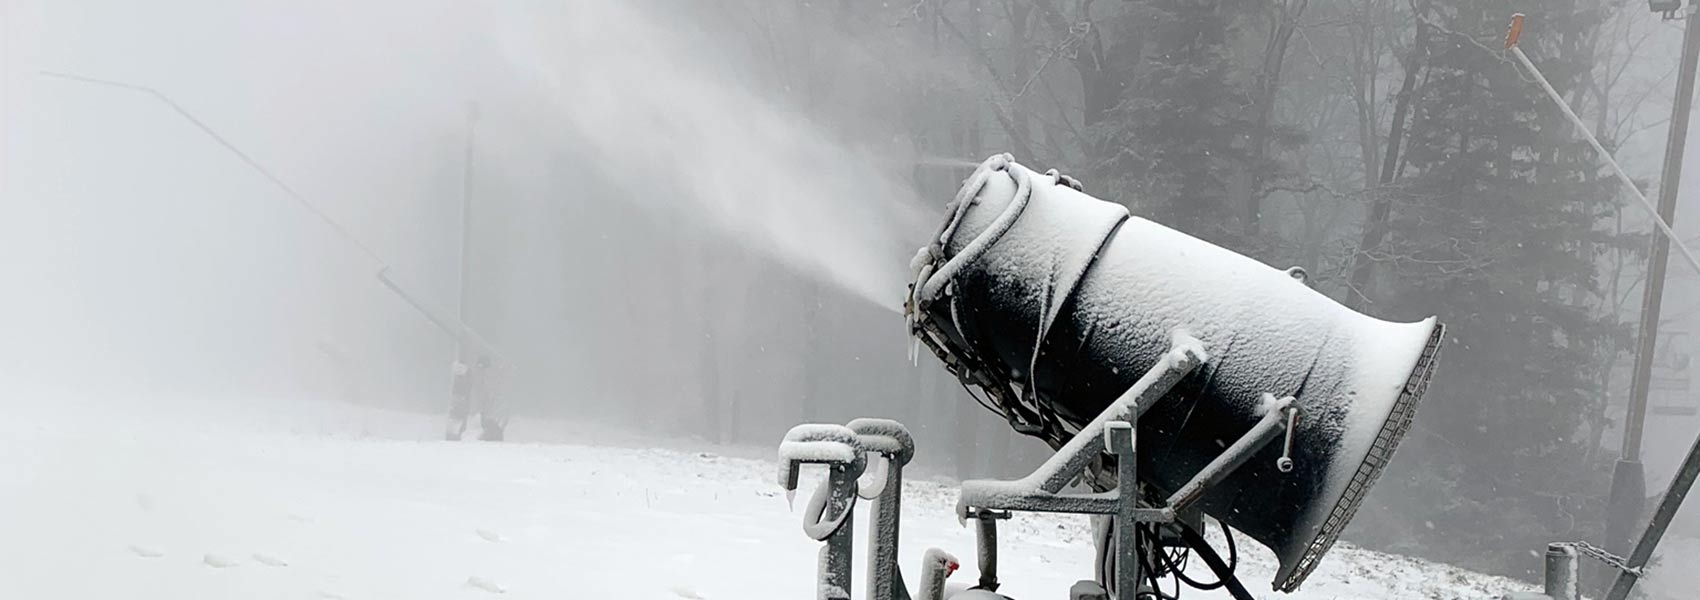 Snowmaking at Laurel Mountain